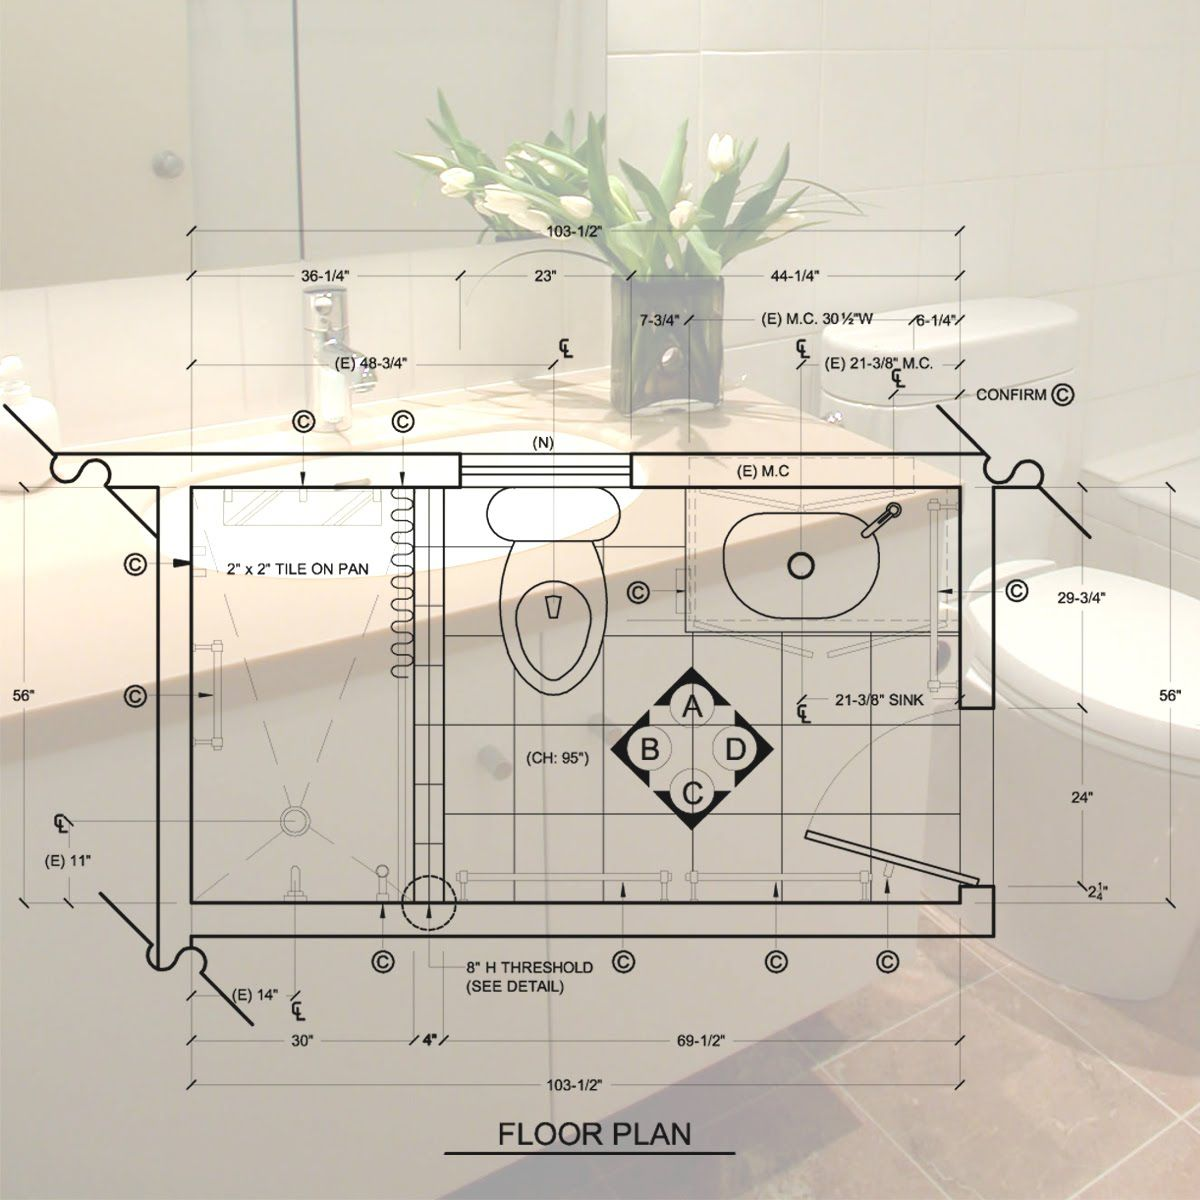 8 X 7 Bathroom Layout Ideas Ideas Pinterest Bathroom Interiors Inside Ideas Interiors design about Everything [magnanprojects.com]